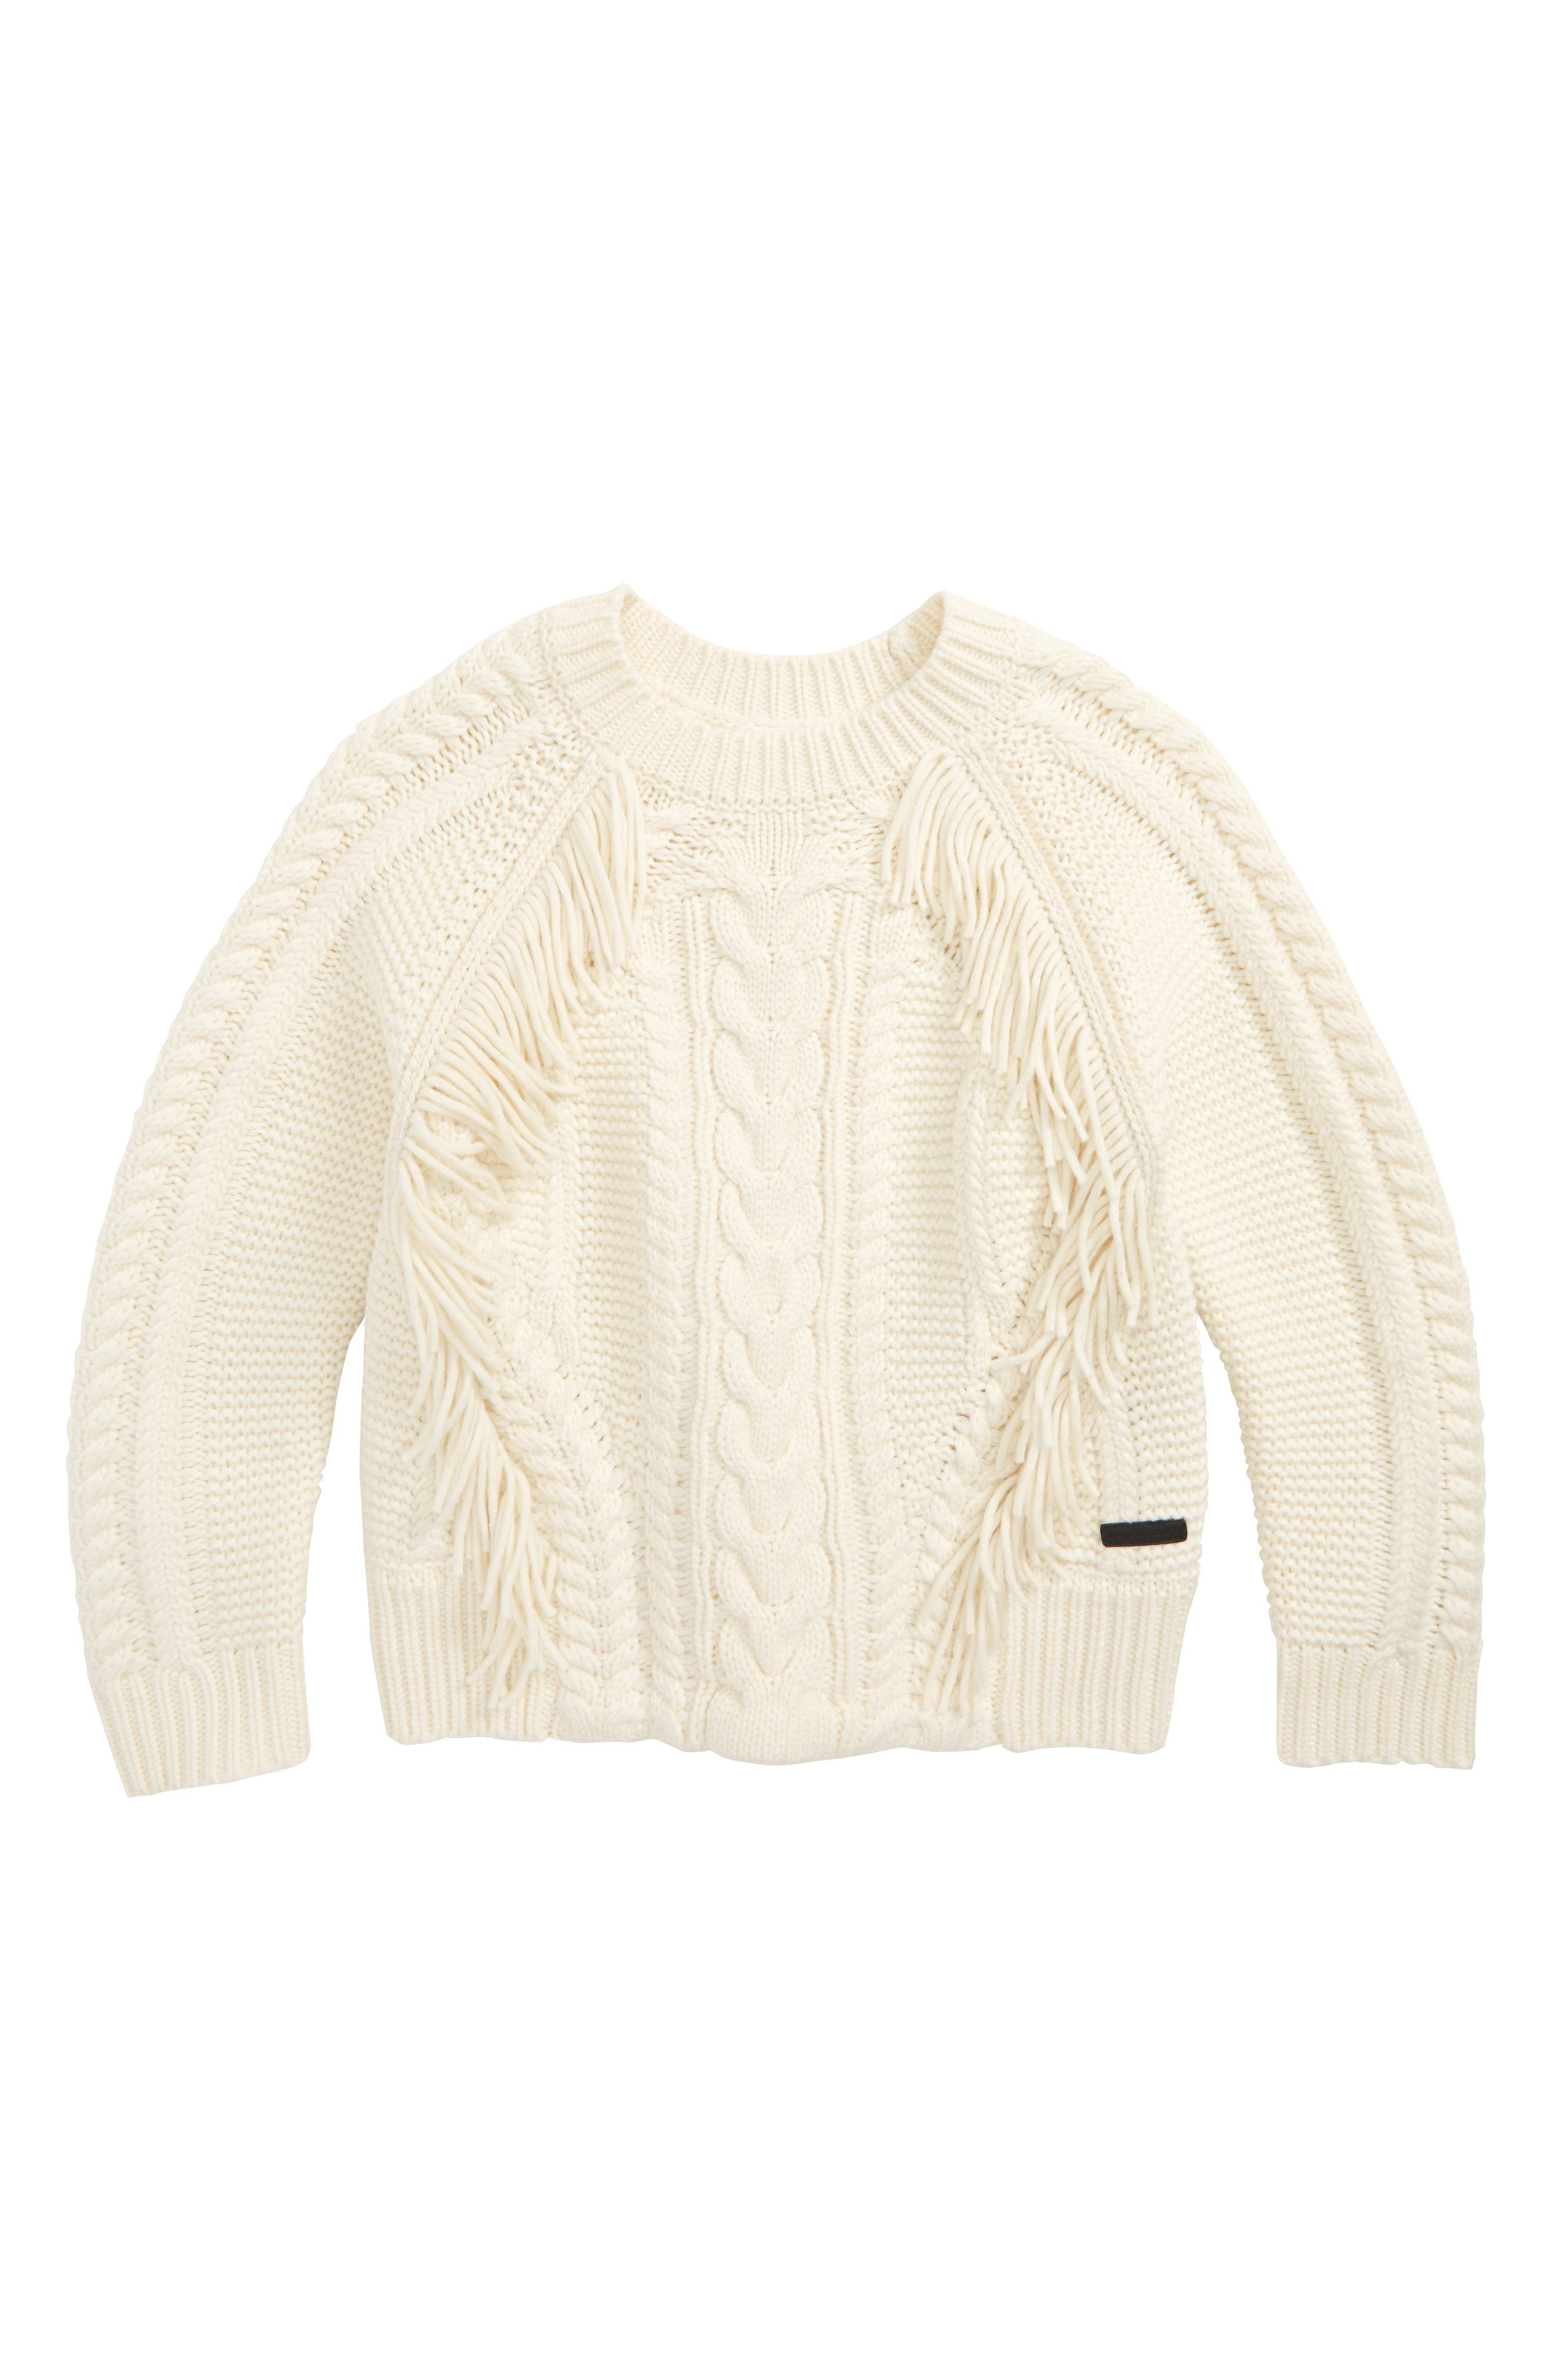 Natasia Cable Knit Sweater,                         Main,                         color, 903